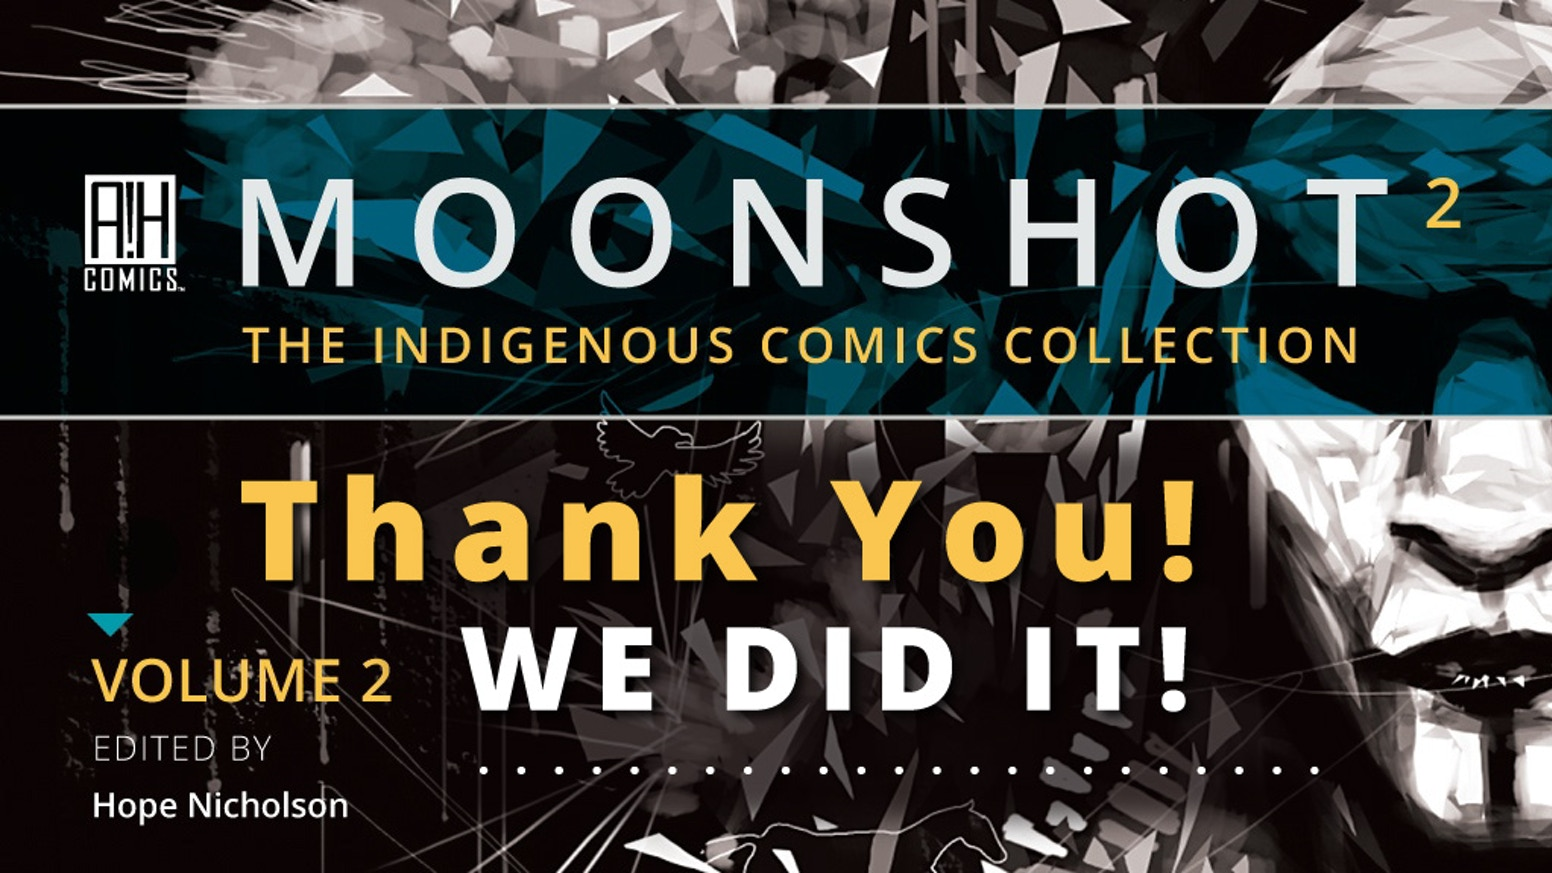 The multiple award-winning MOONSHOT The Indigenous Comics Collection is back with a brand new volume of incredible stories!